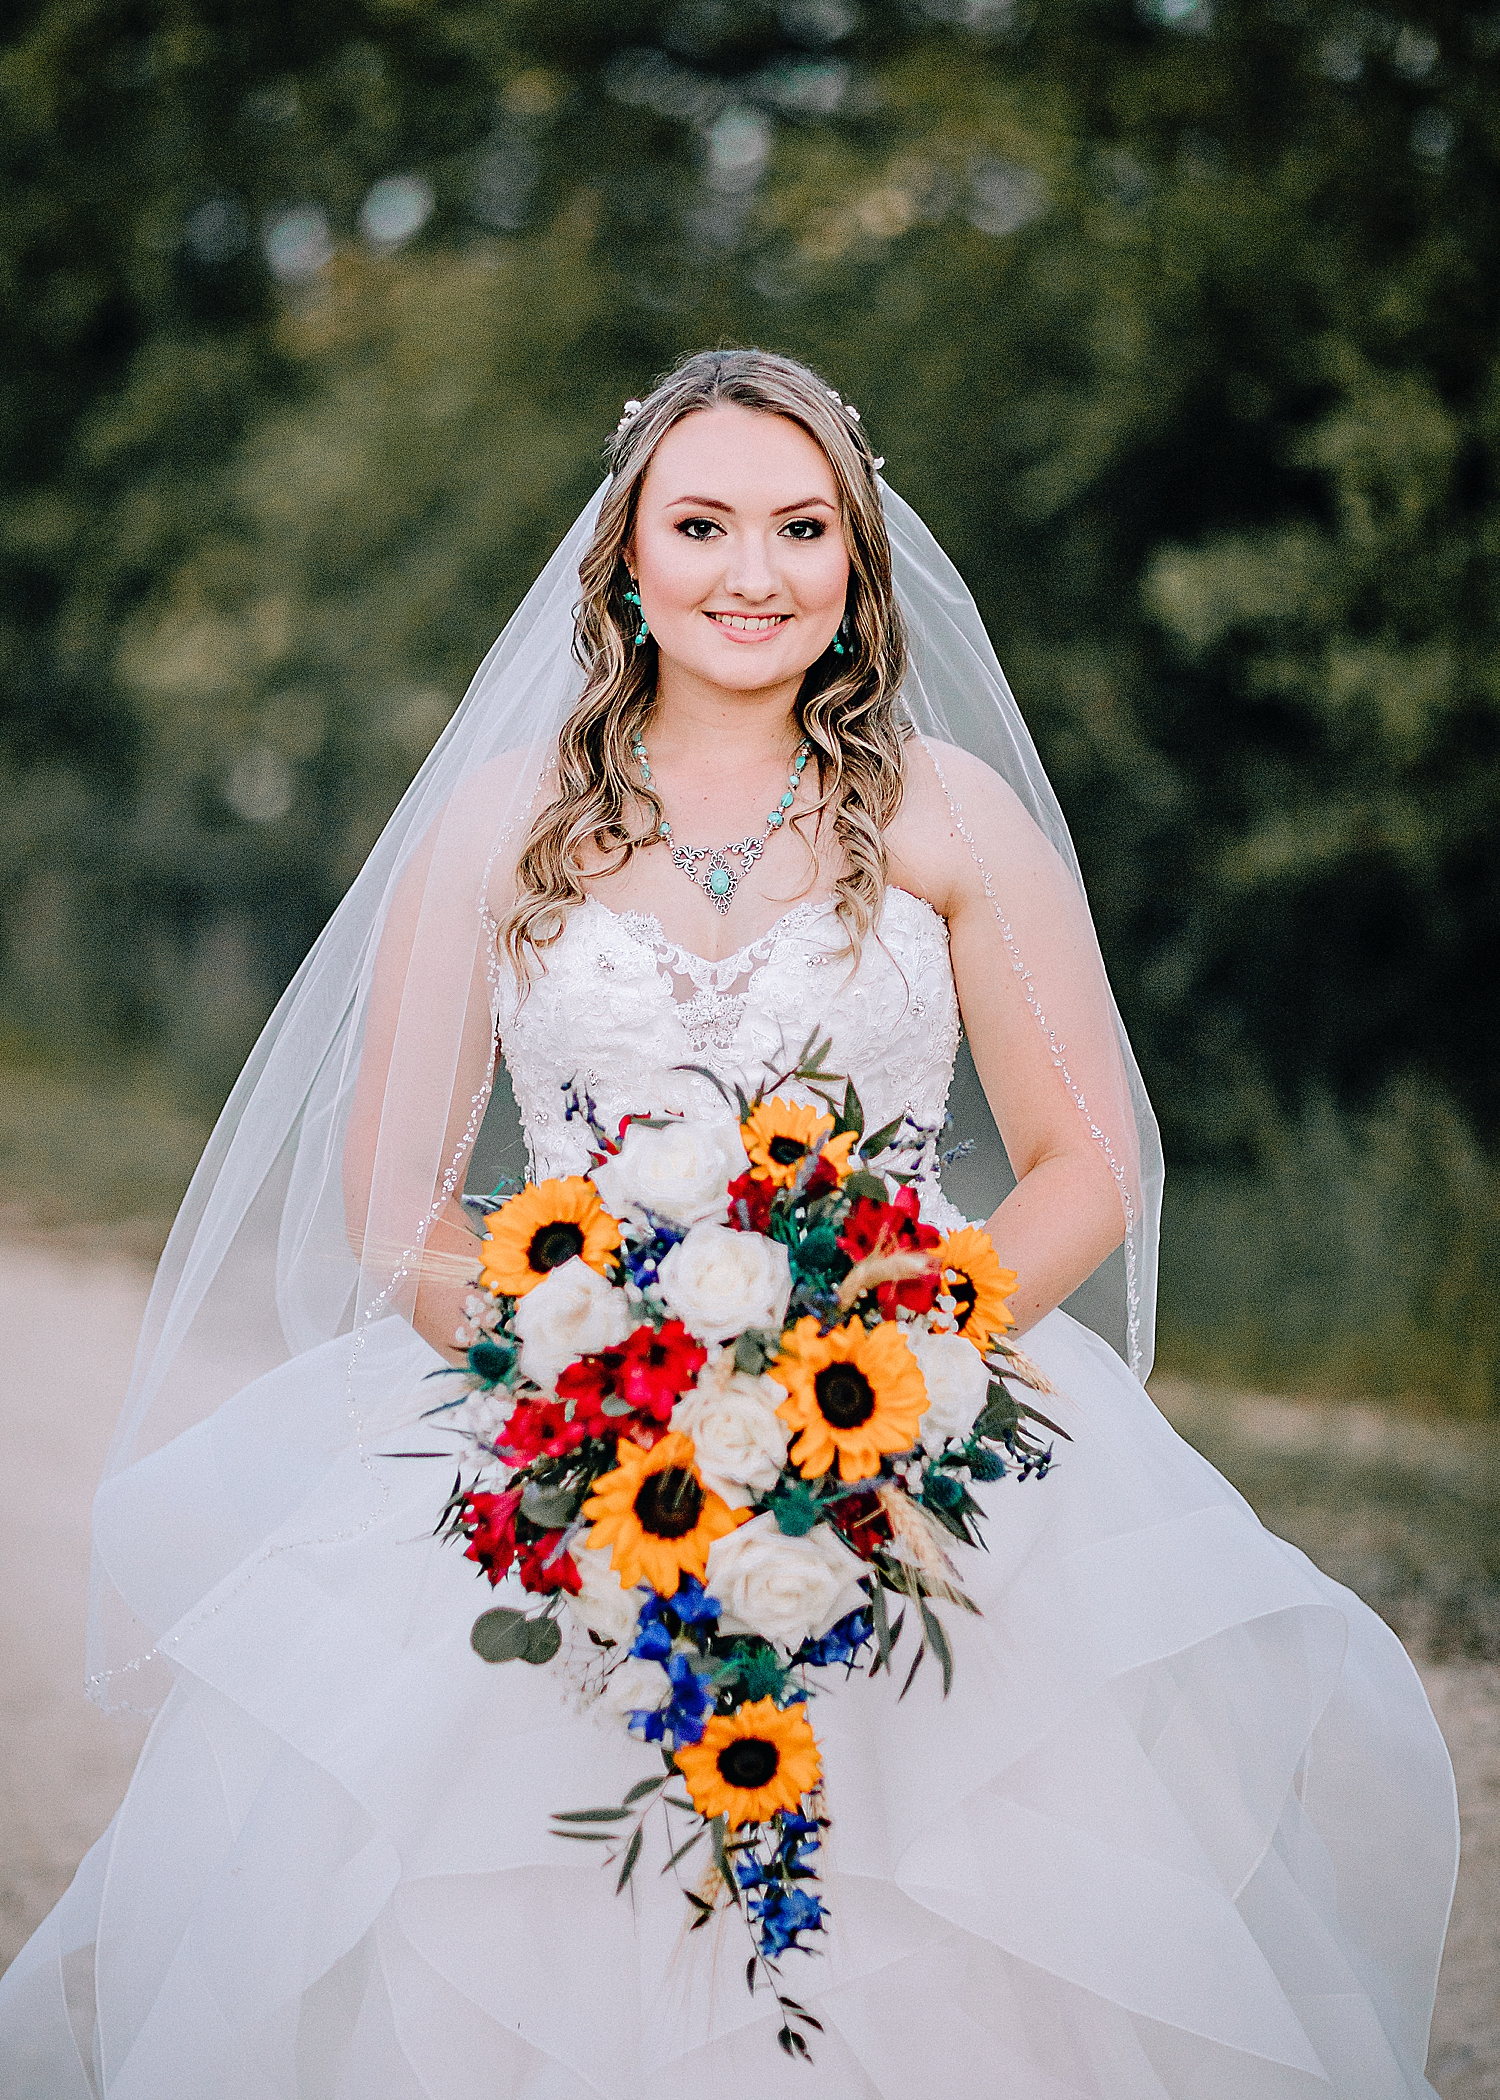 Carly-Barton-Photography-Texas-Bridals-Boerne-Rustic-Wedding-Photos_0021.jpg